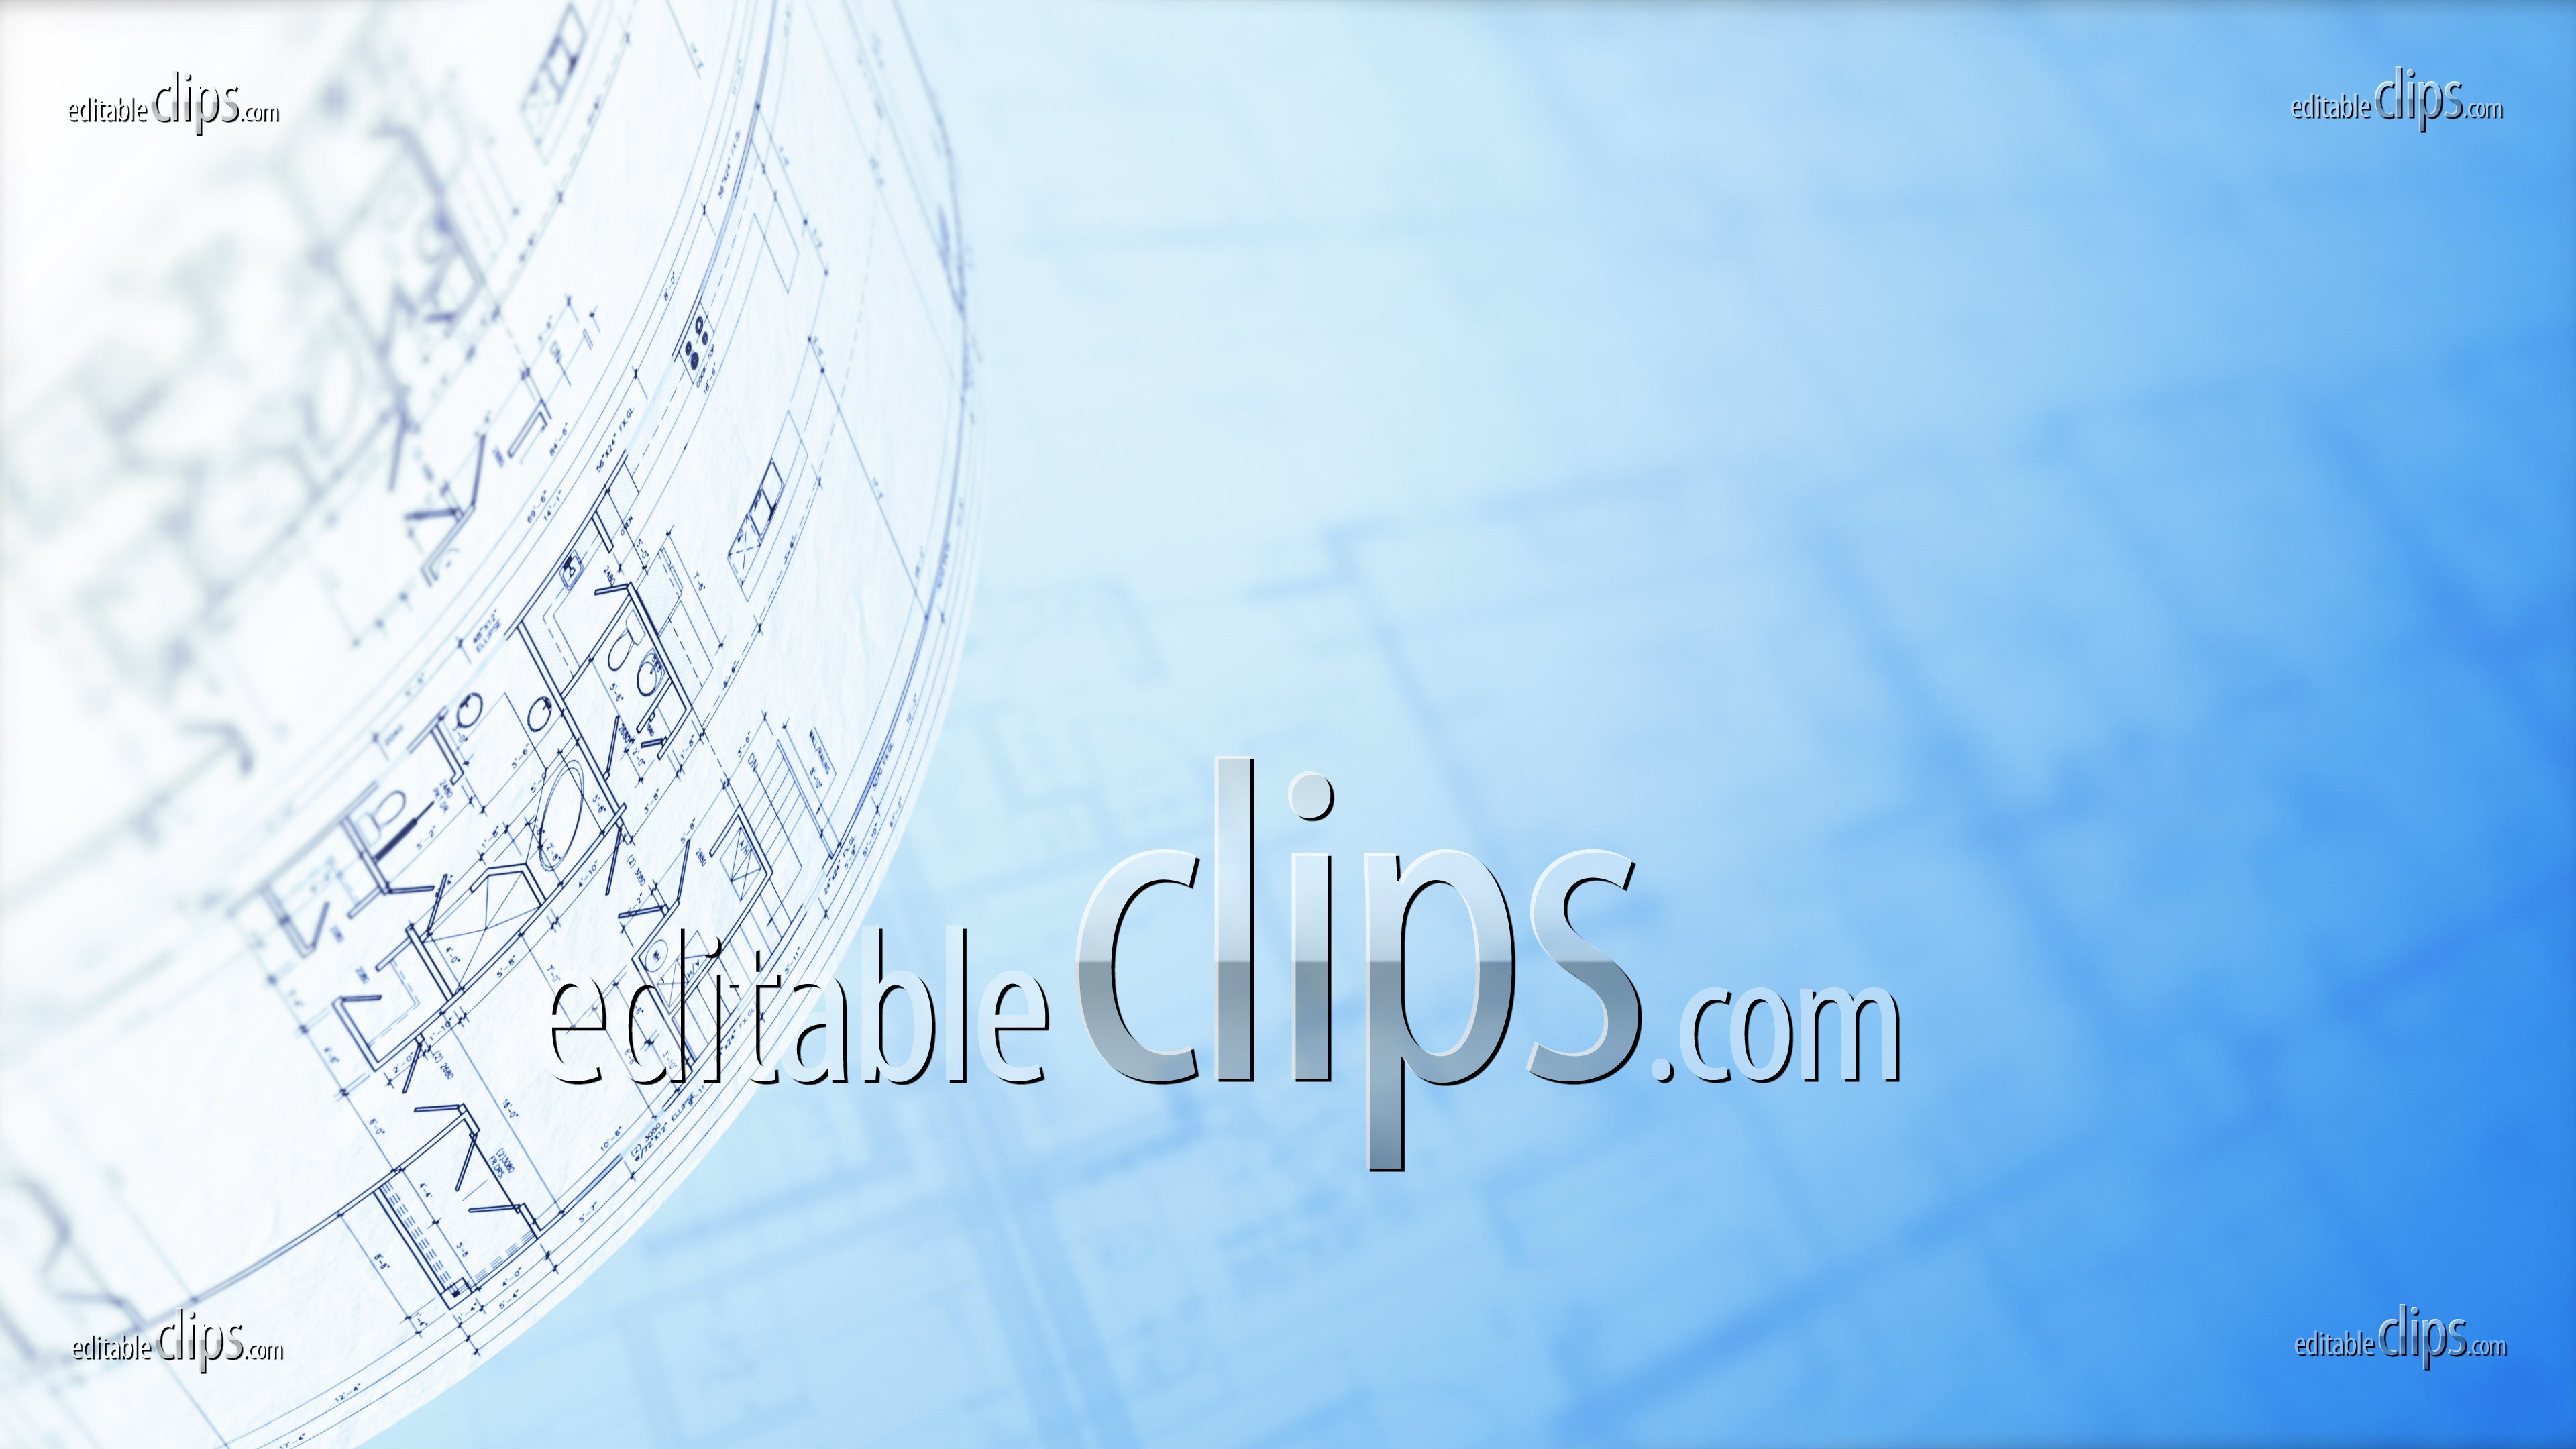 Floor Plan Architectural Plans 4k Editable Clips